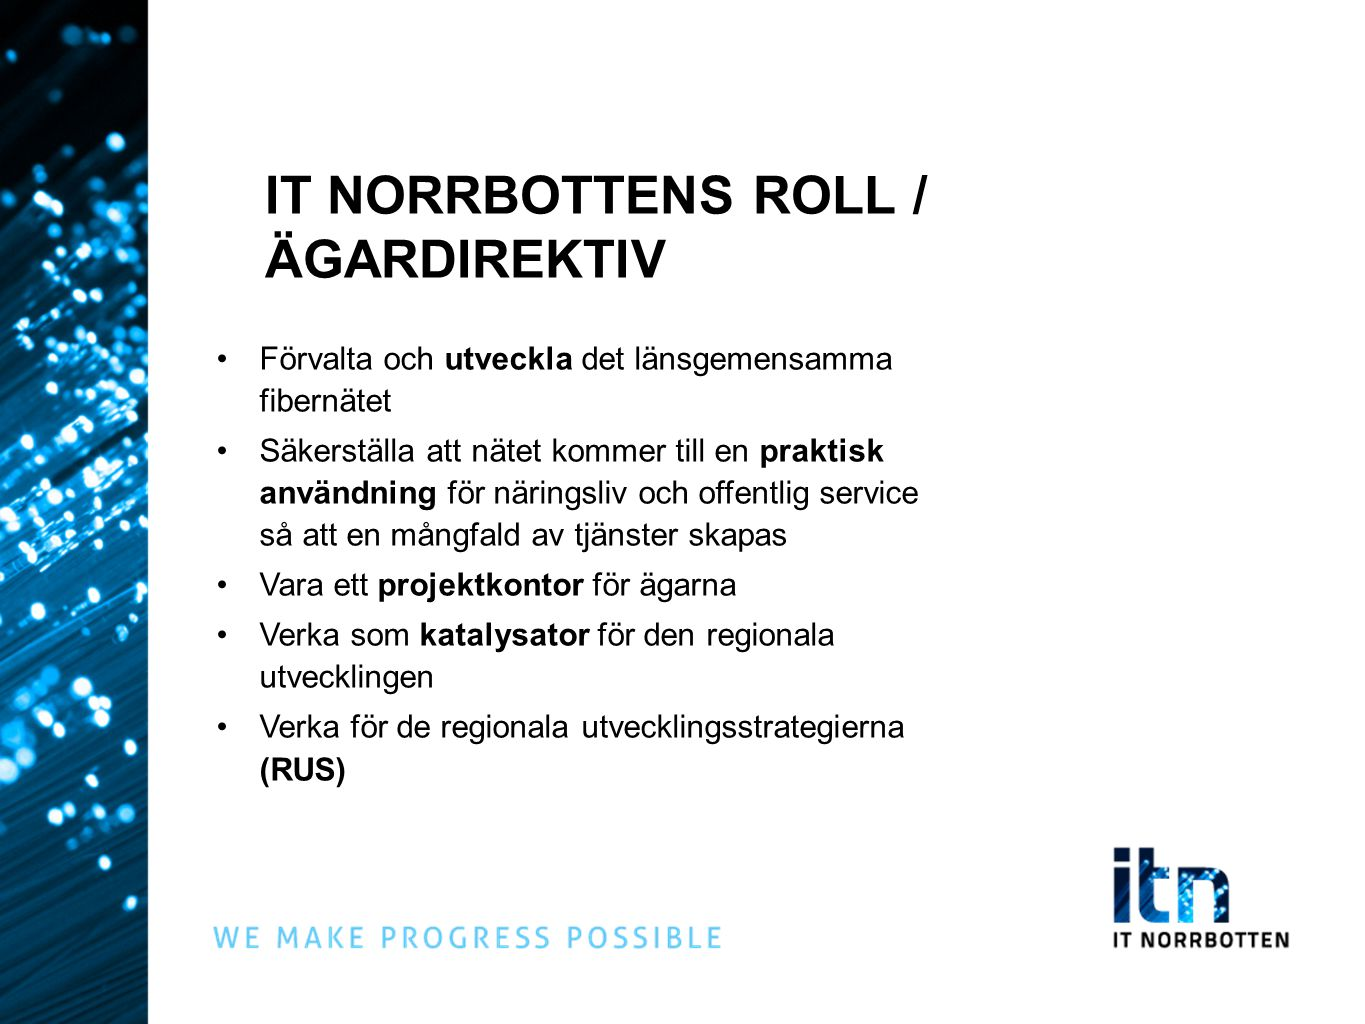 IT NORRBOTTENS ROLL / ÄGARDIREKTIV